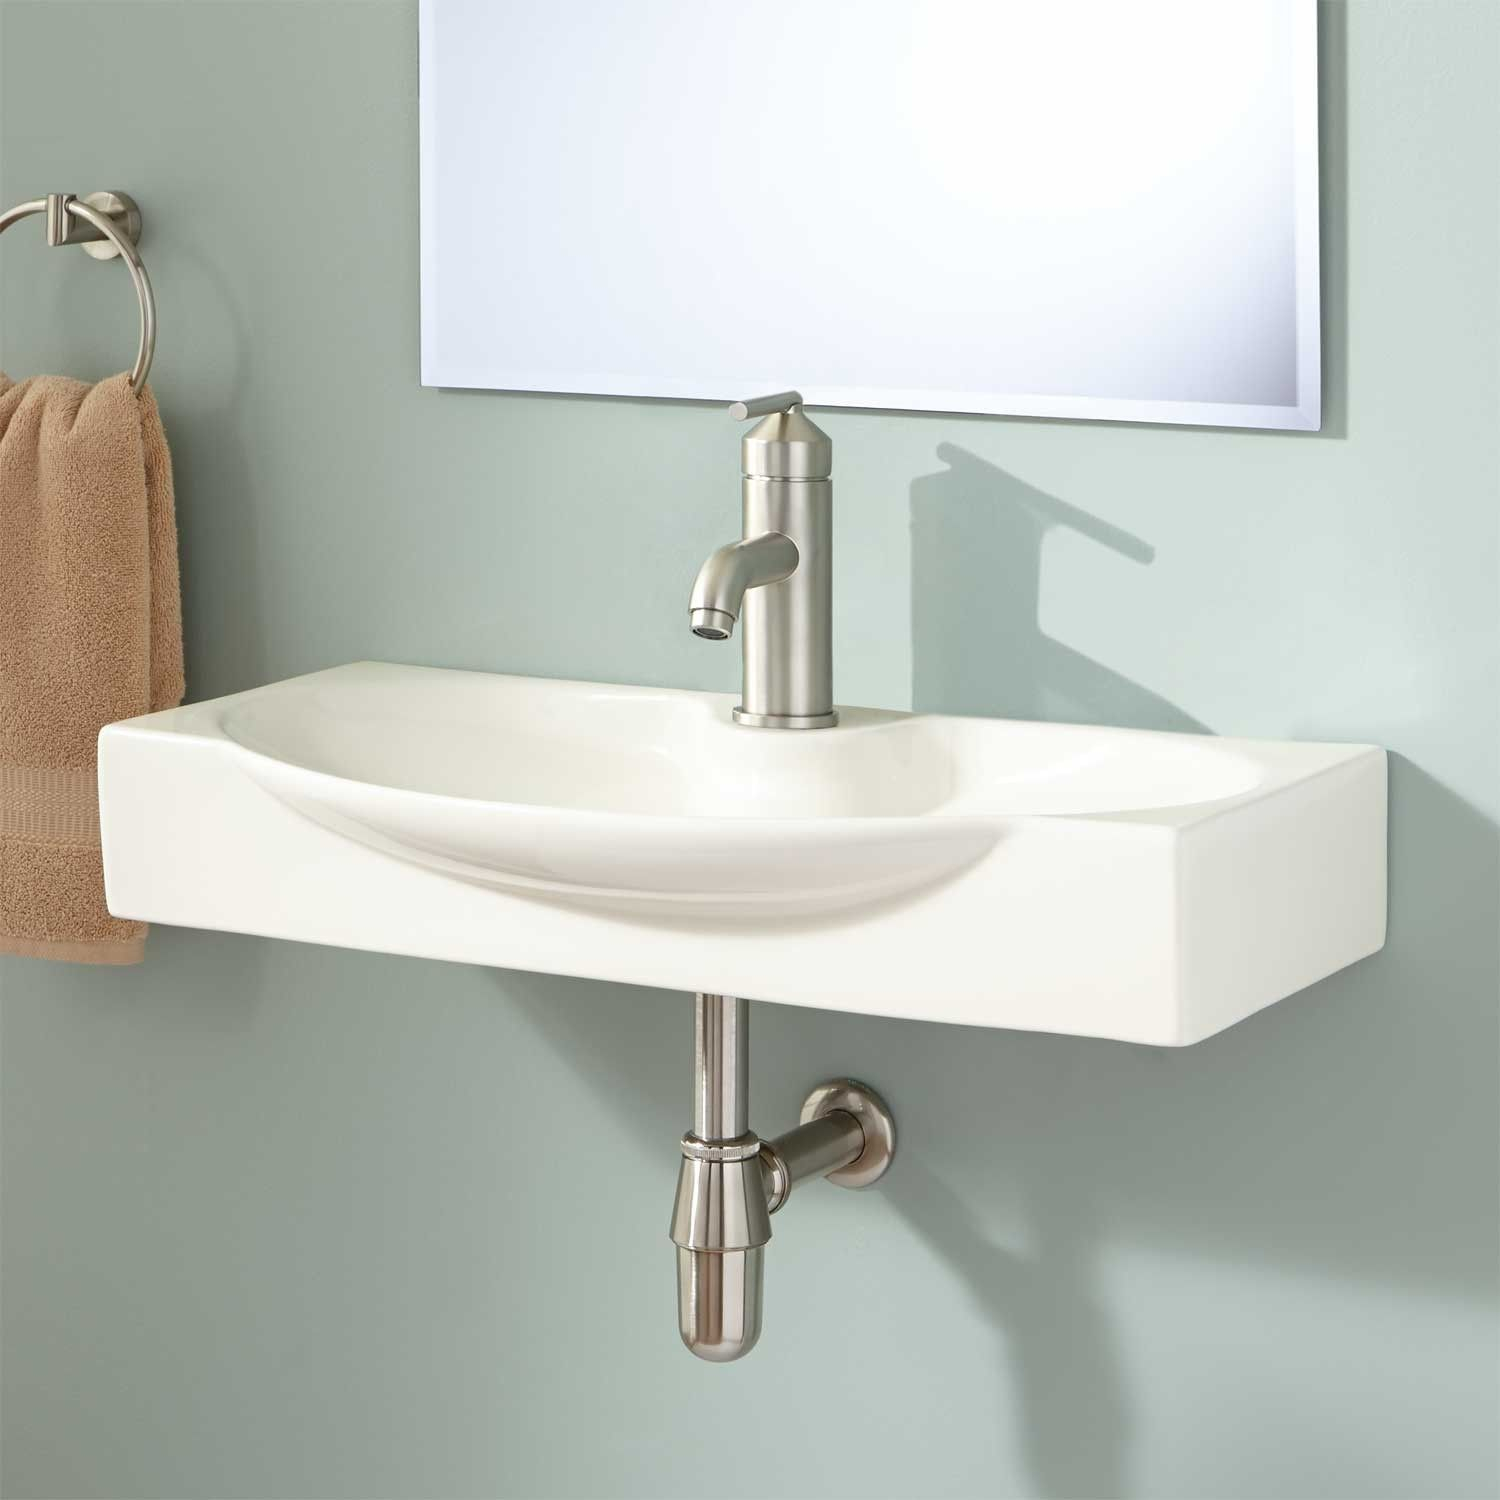 Amazing Ronan Wall-Mount Bathroom Sink - Wall Mount Sinks - Bathroom Sinks with regard to Small Bathroom Sinks Wall Mount